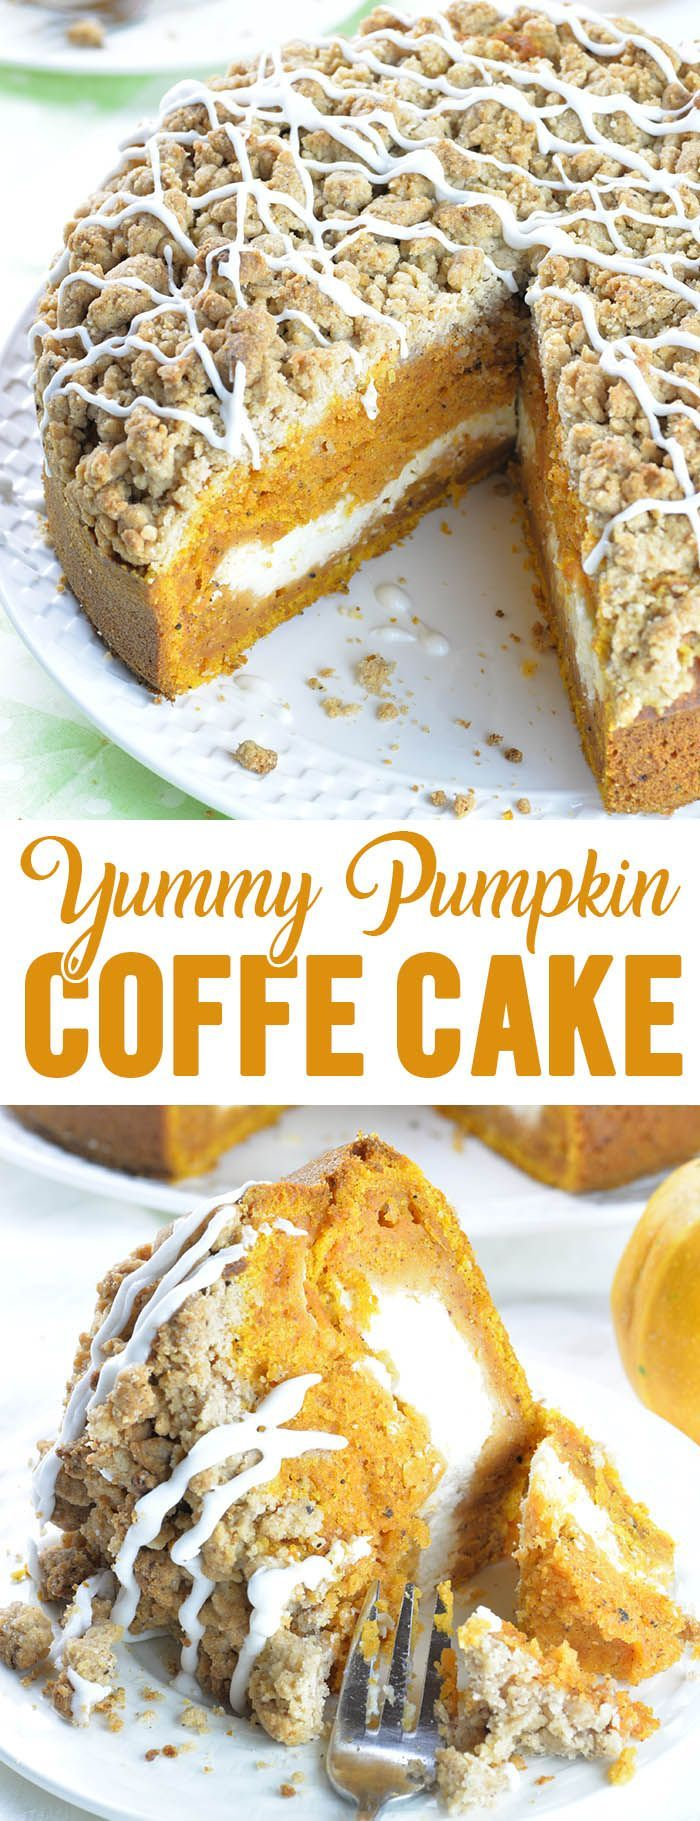 Pumpkin Coffee Cake This is the fall recipe you\u2019ve all been waiting for- Pumpkin Coffee Cake! A big slice of spiced pumpkin cake with cream cheese filling in the center and crunchy brown sugar-cinnamon crumbs on top, drizzled with sweet glaze, paired with a cup of coffee is perfect way to start a fall day. #cakesandcheesecakes